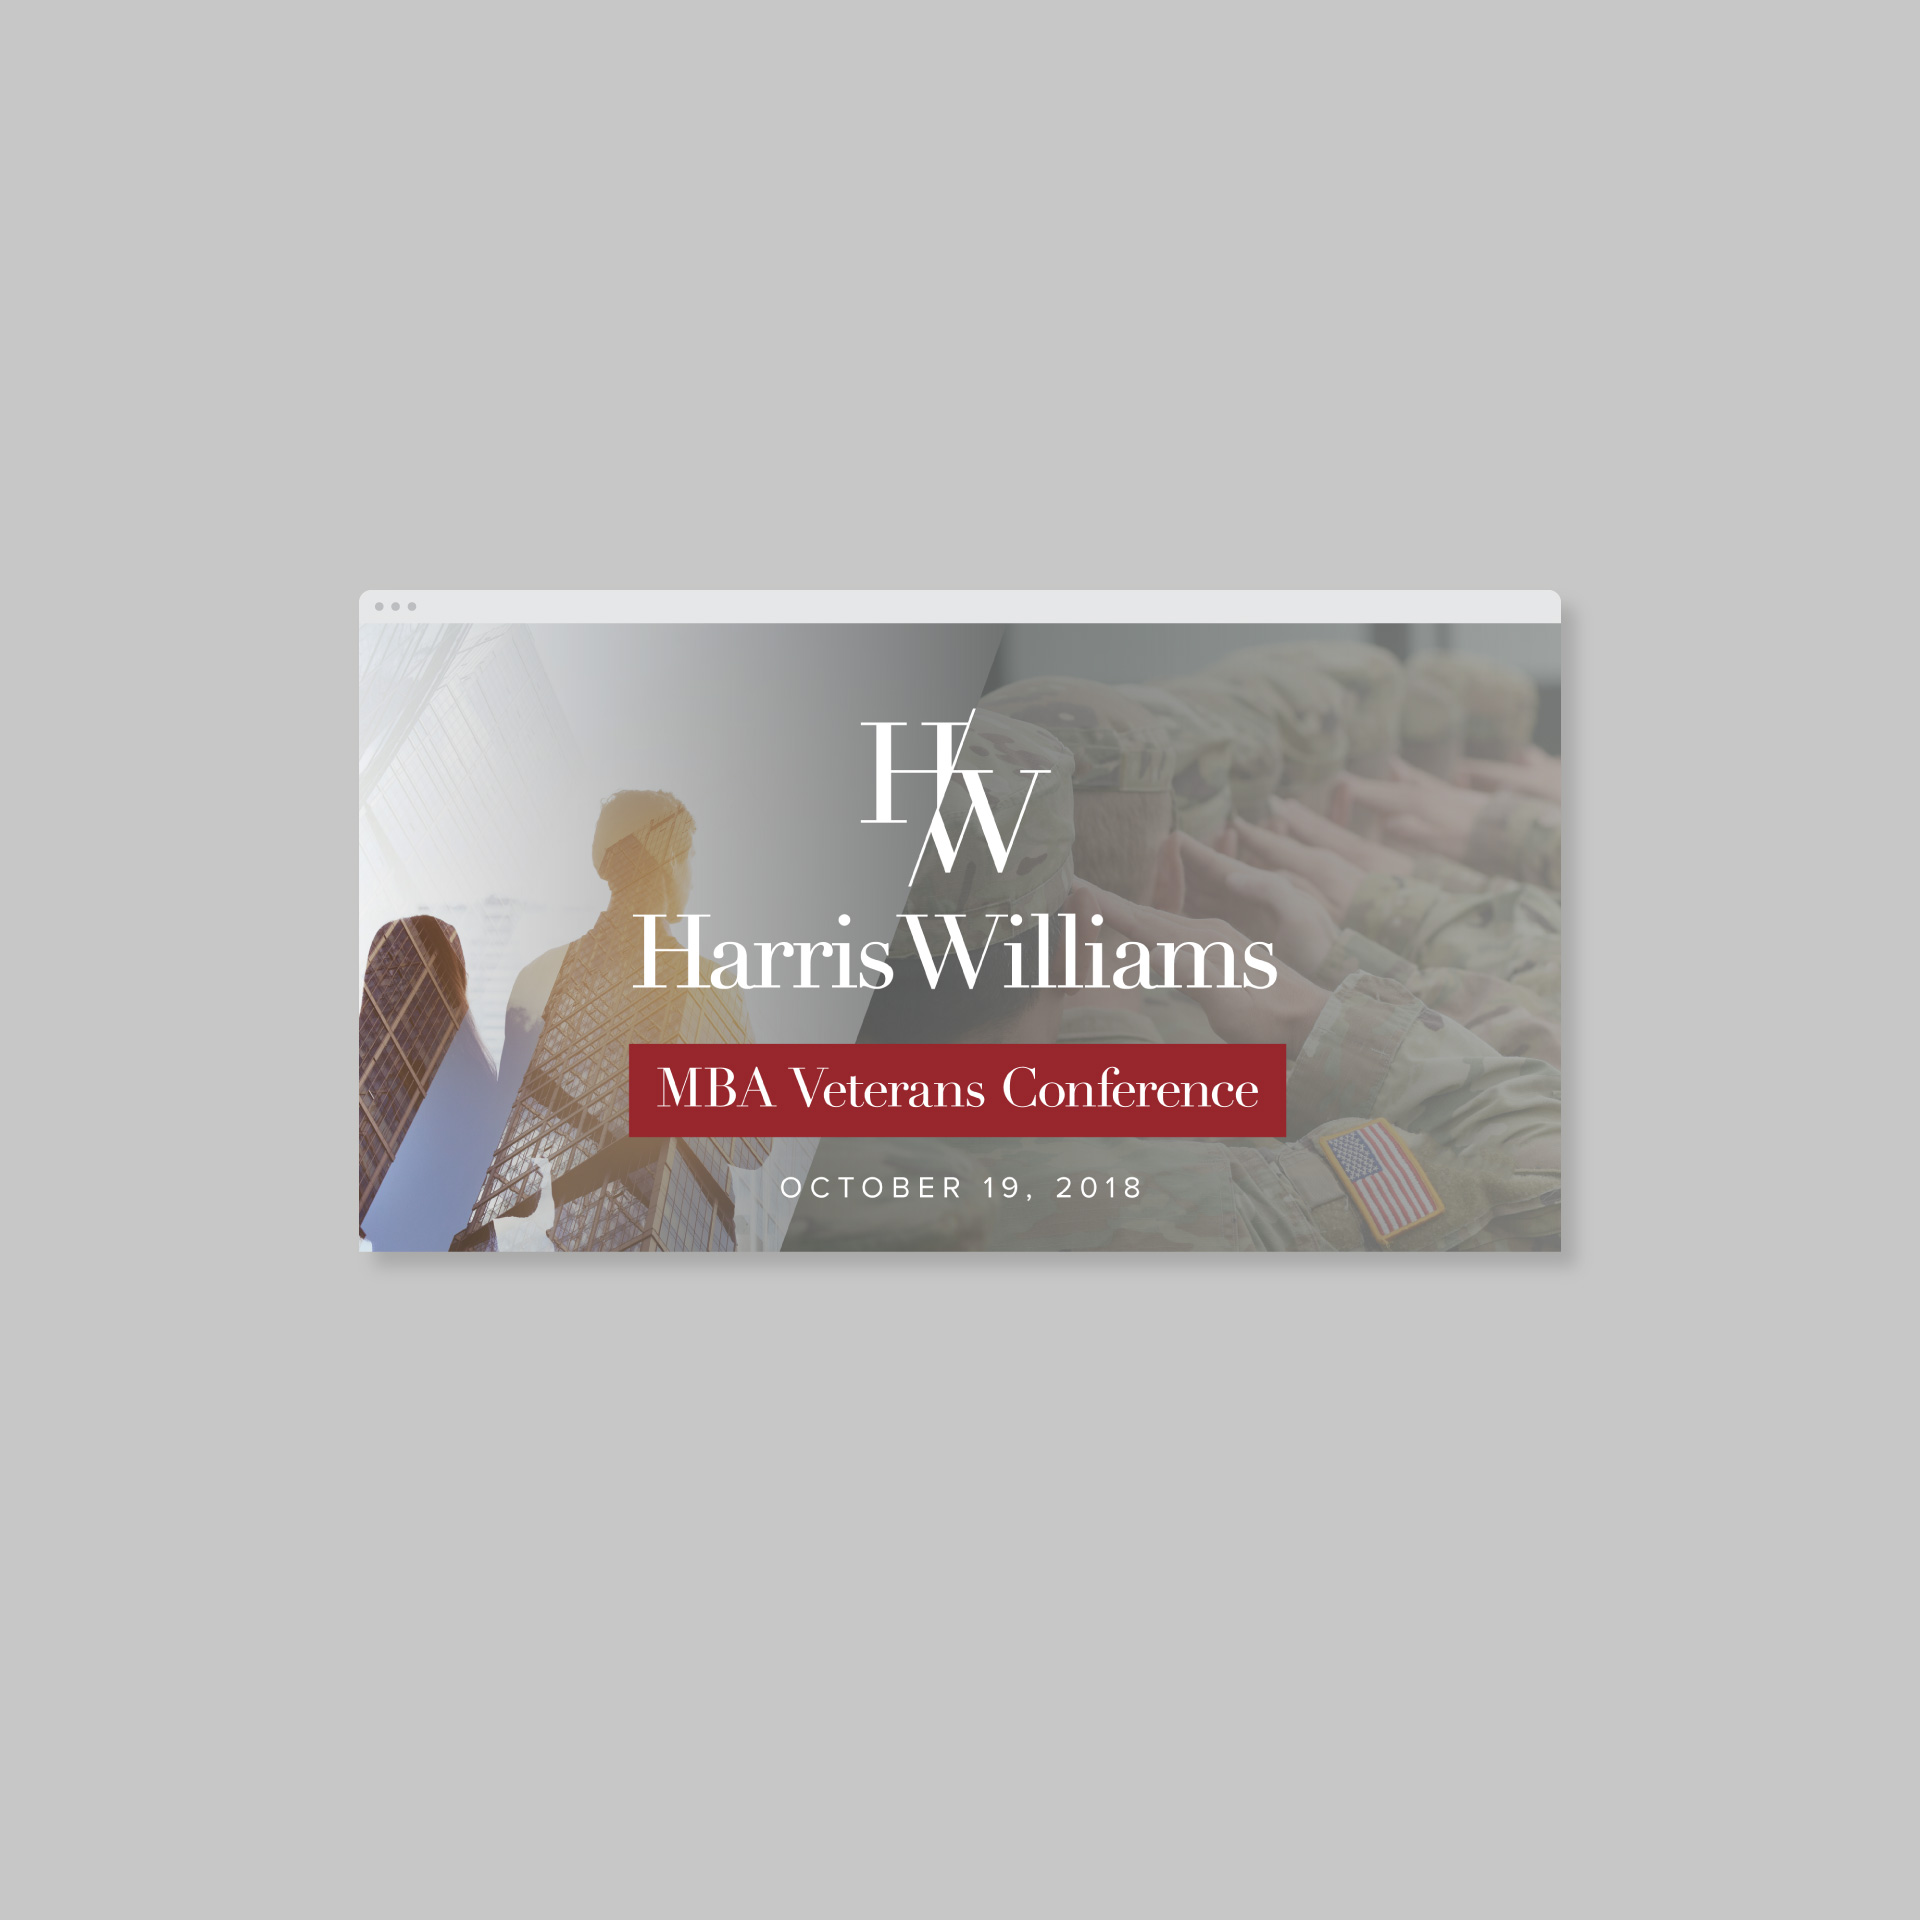 ad for Harris Williams MBA Veterans Conference showing soldiers and businessmen